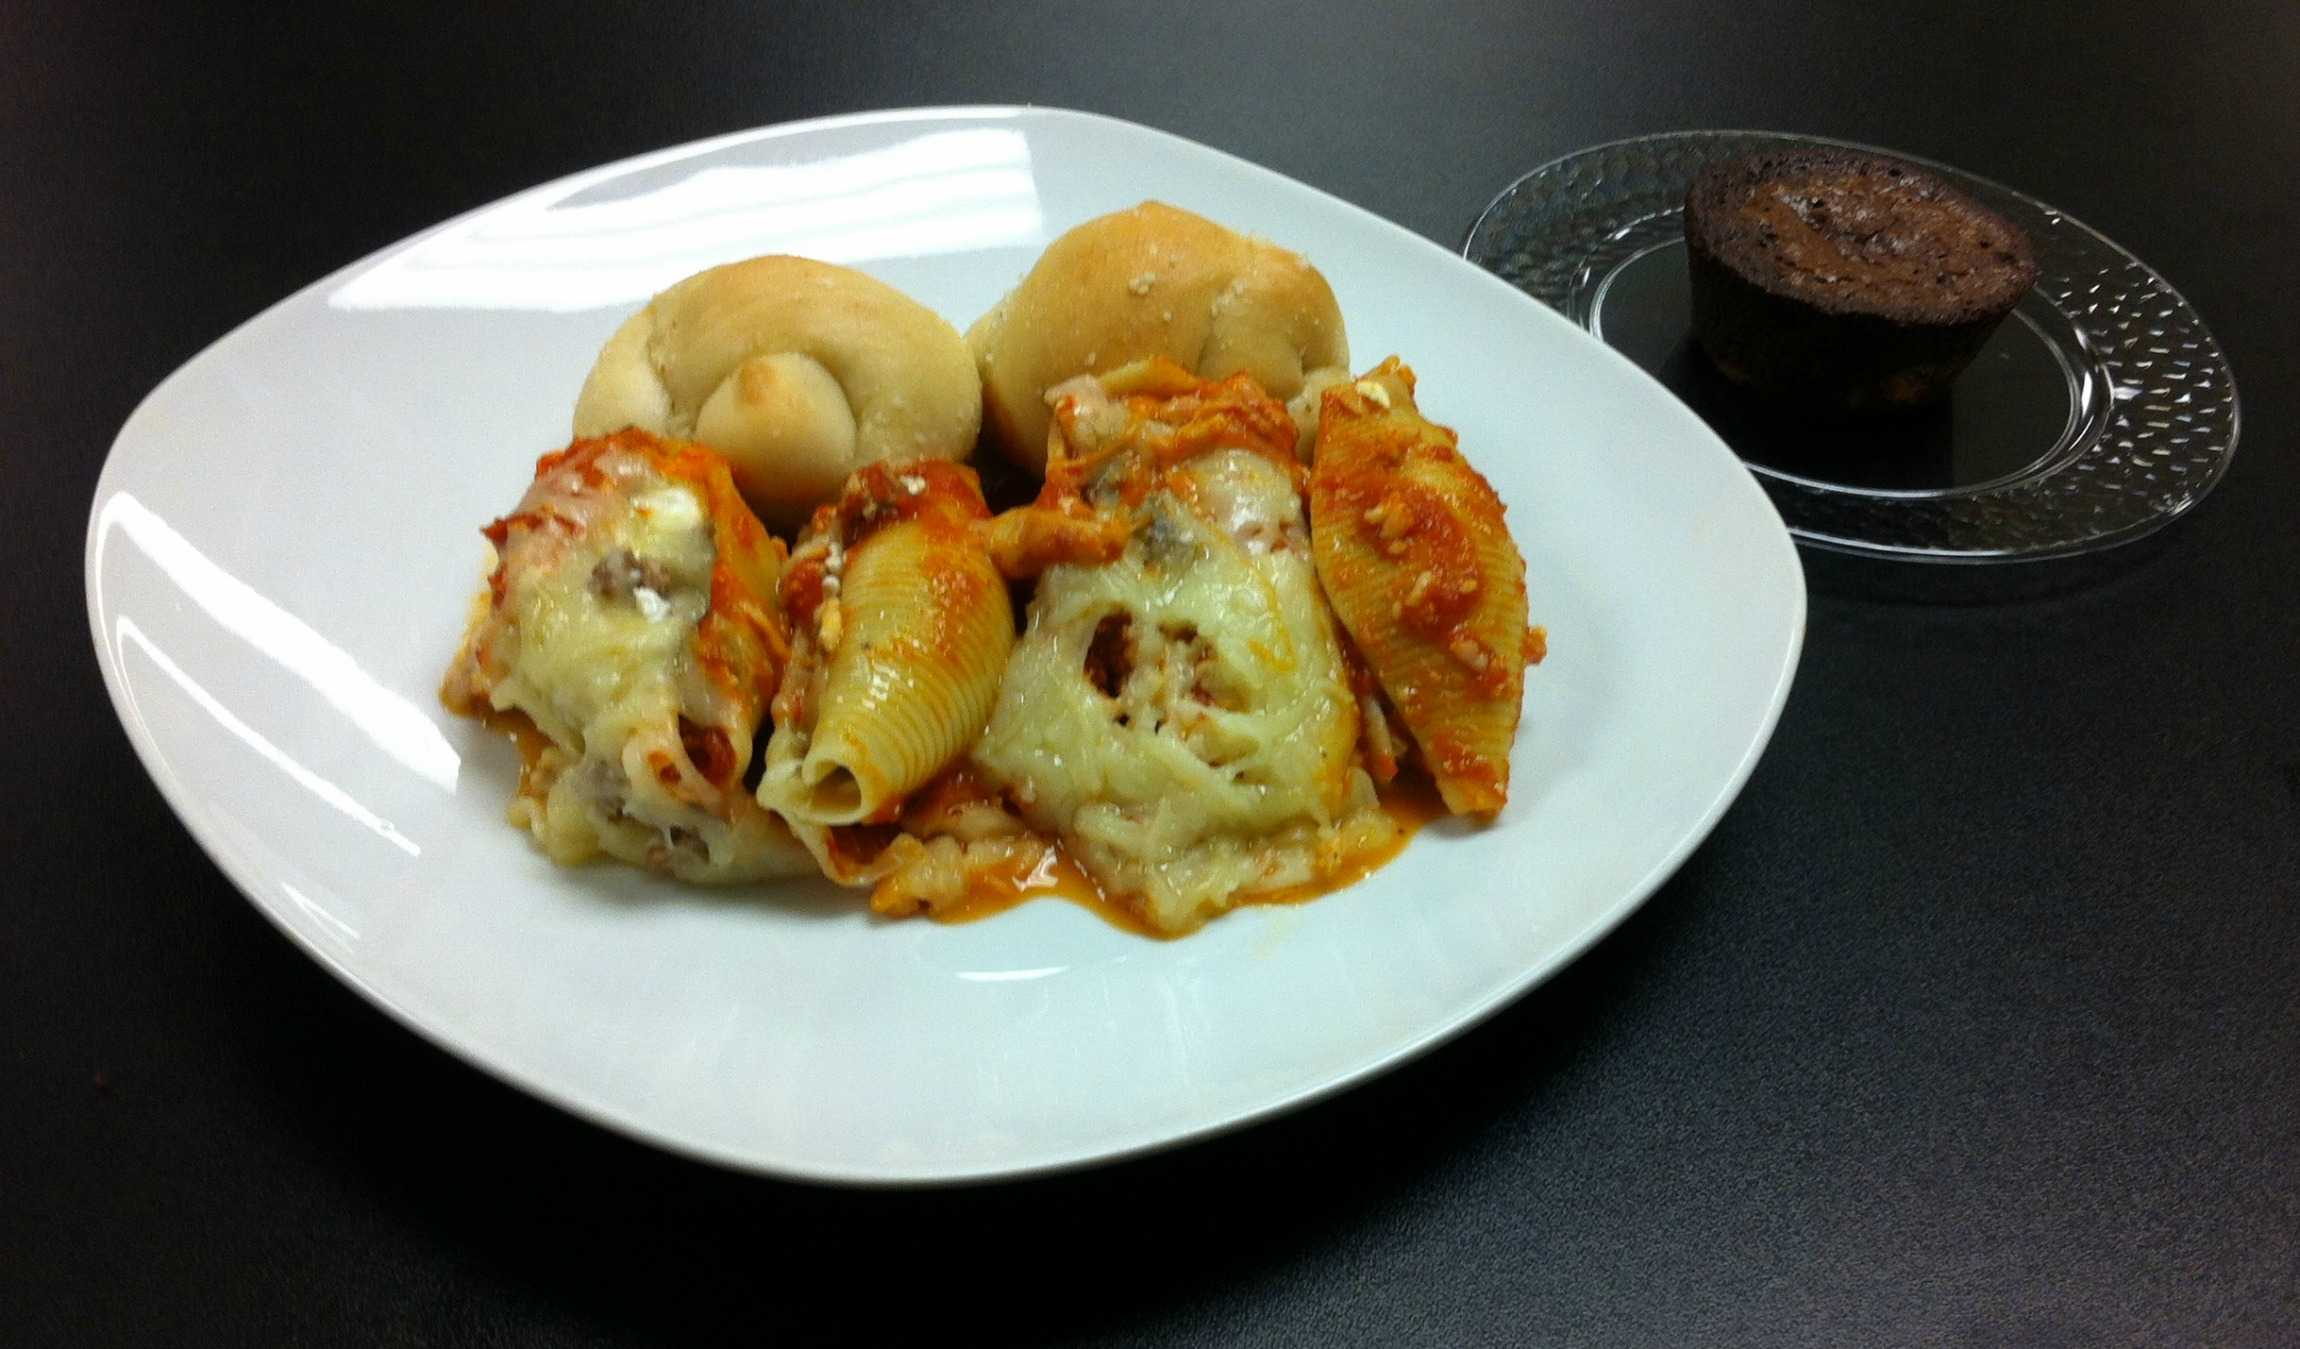 The latest meal: meat and veggie stuffed shells, garlic bread knots, and brownies.